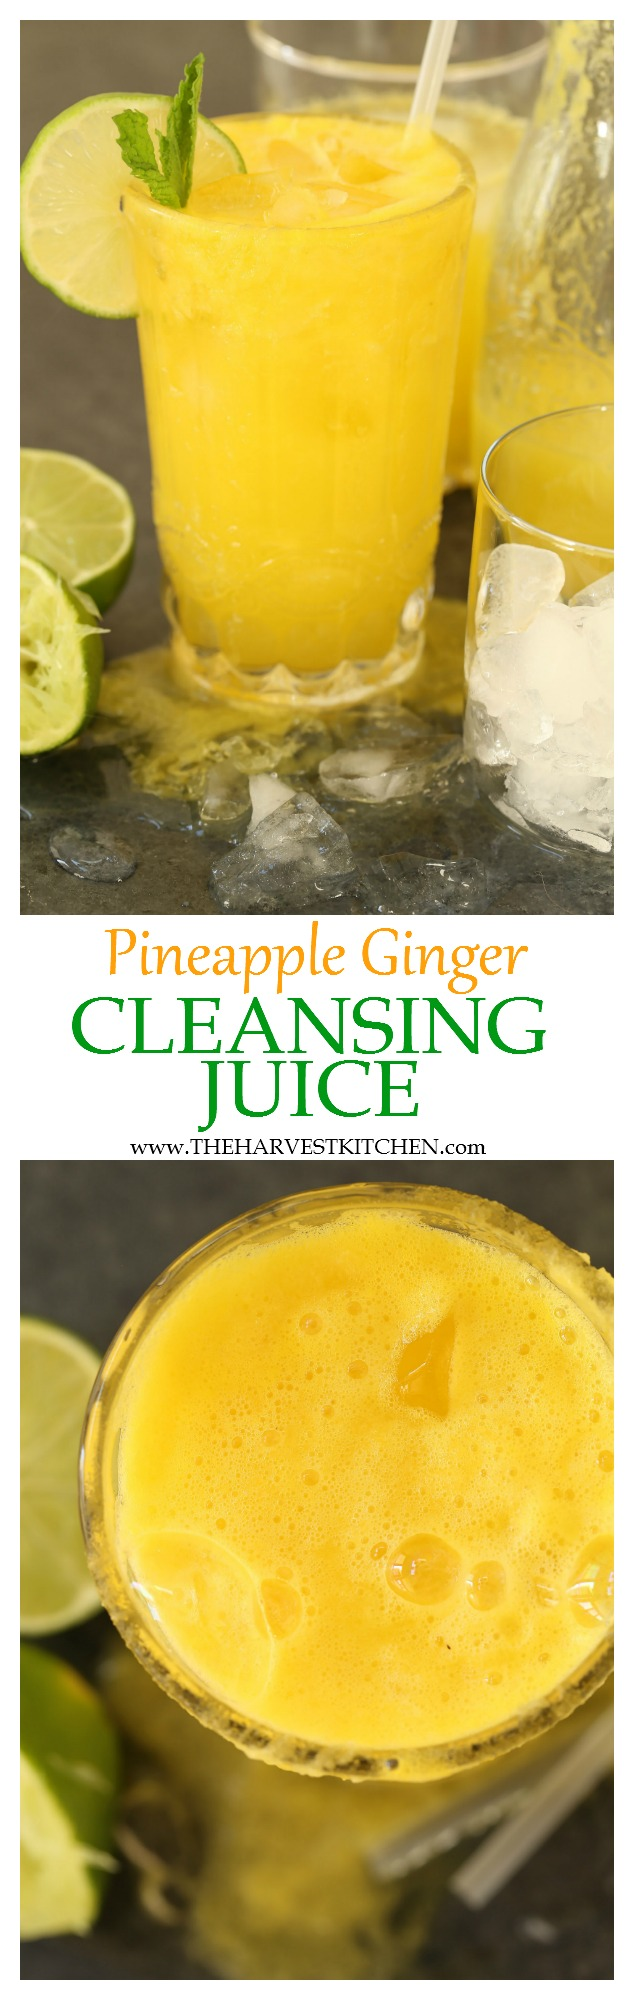 pineapple-ginger-cleansing-juice